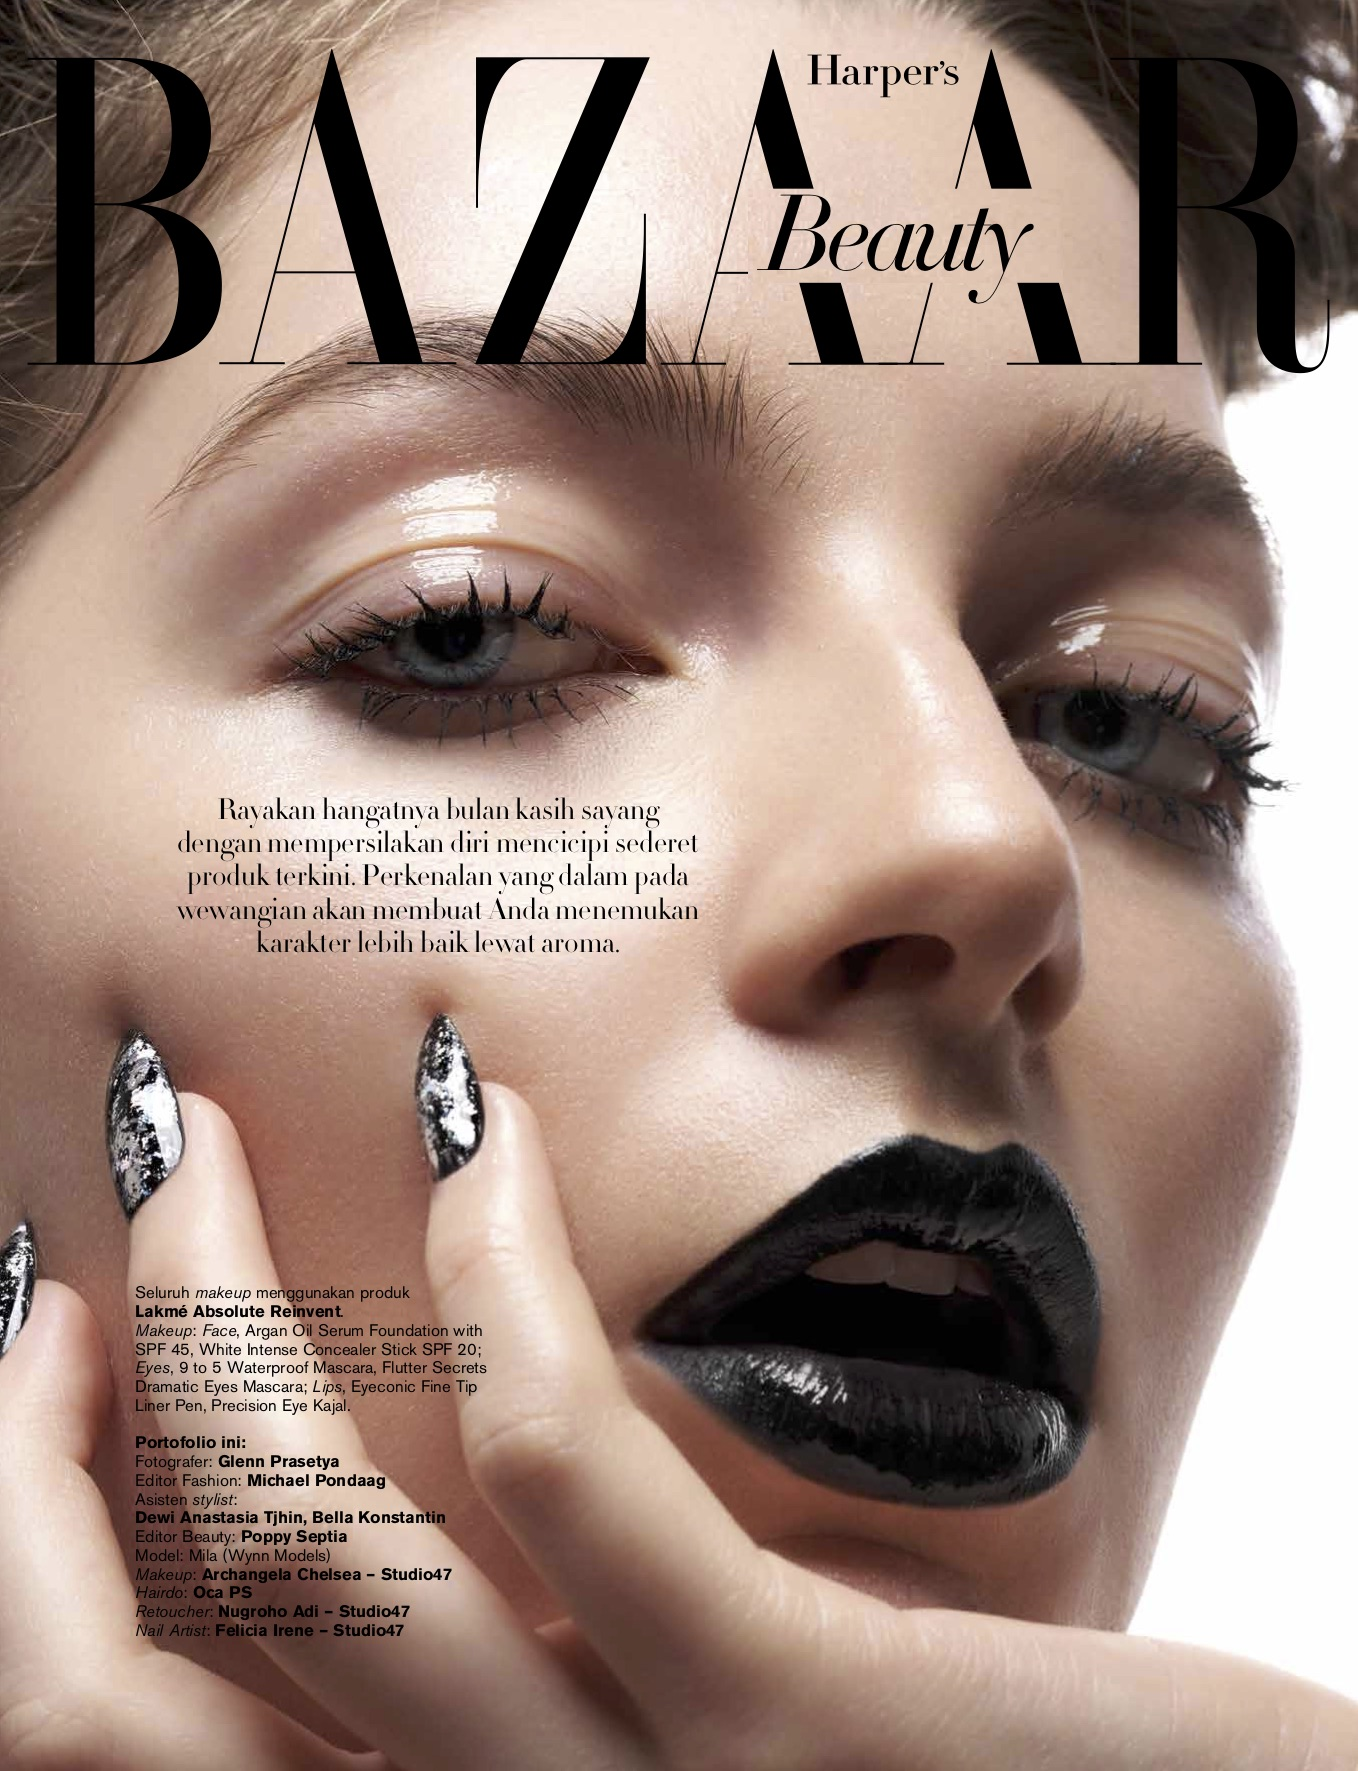 bazaar beauty cover.jpg